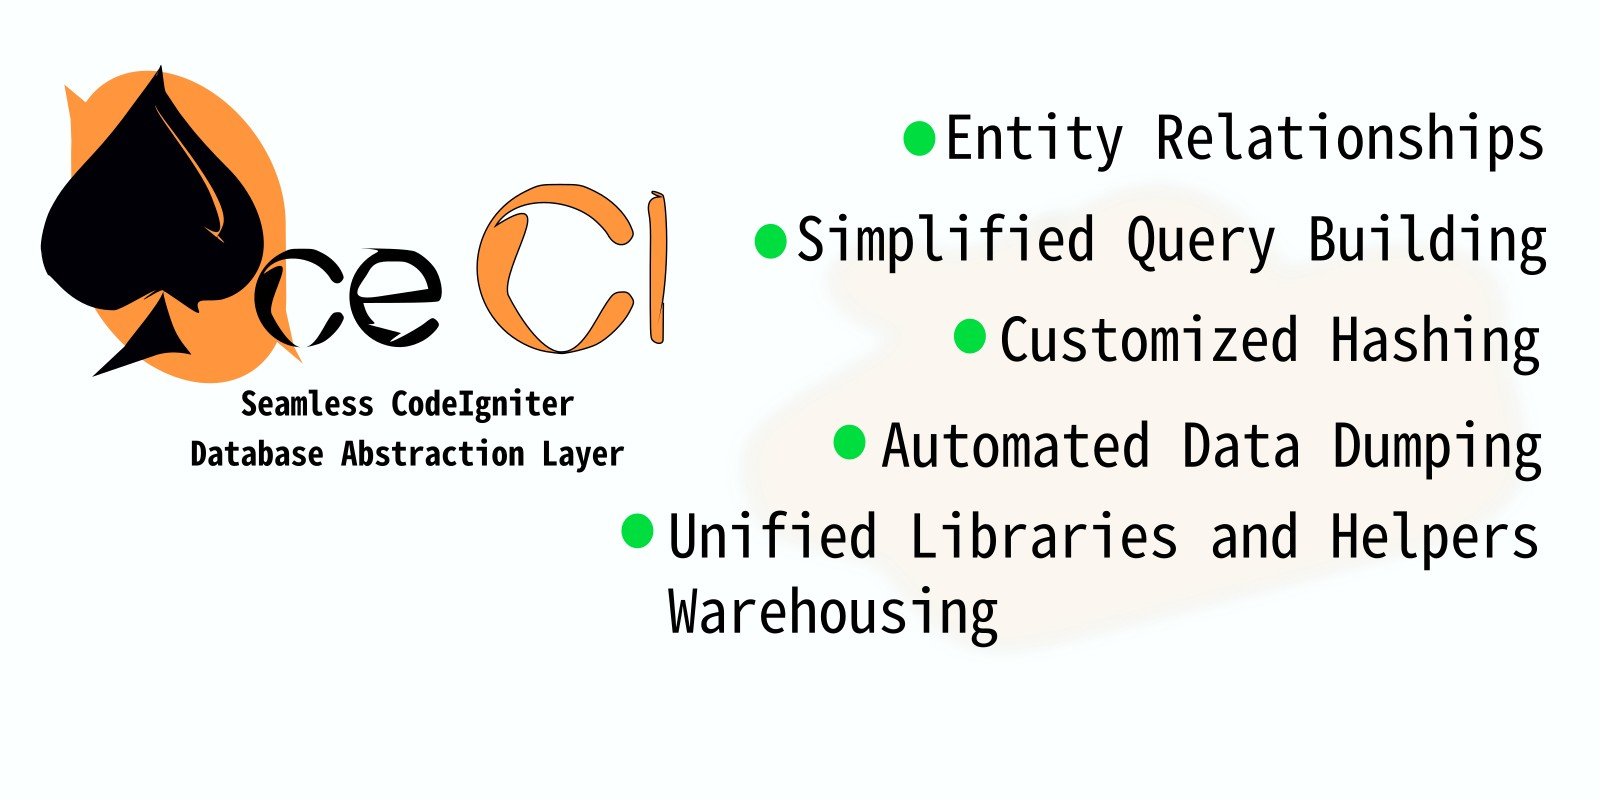 Ace CI - Seamless CodeIgniter Database Abstraction